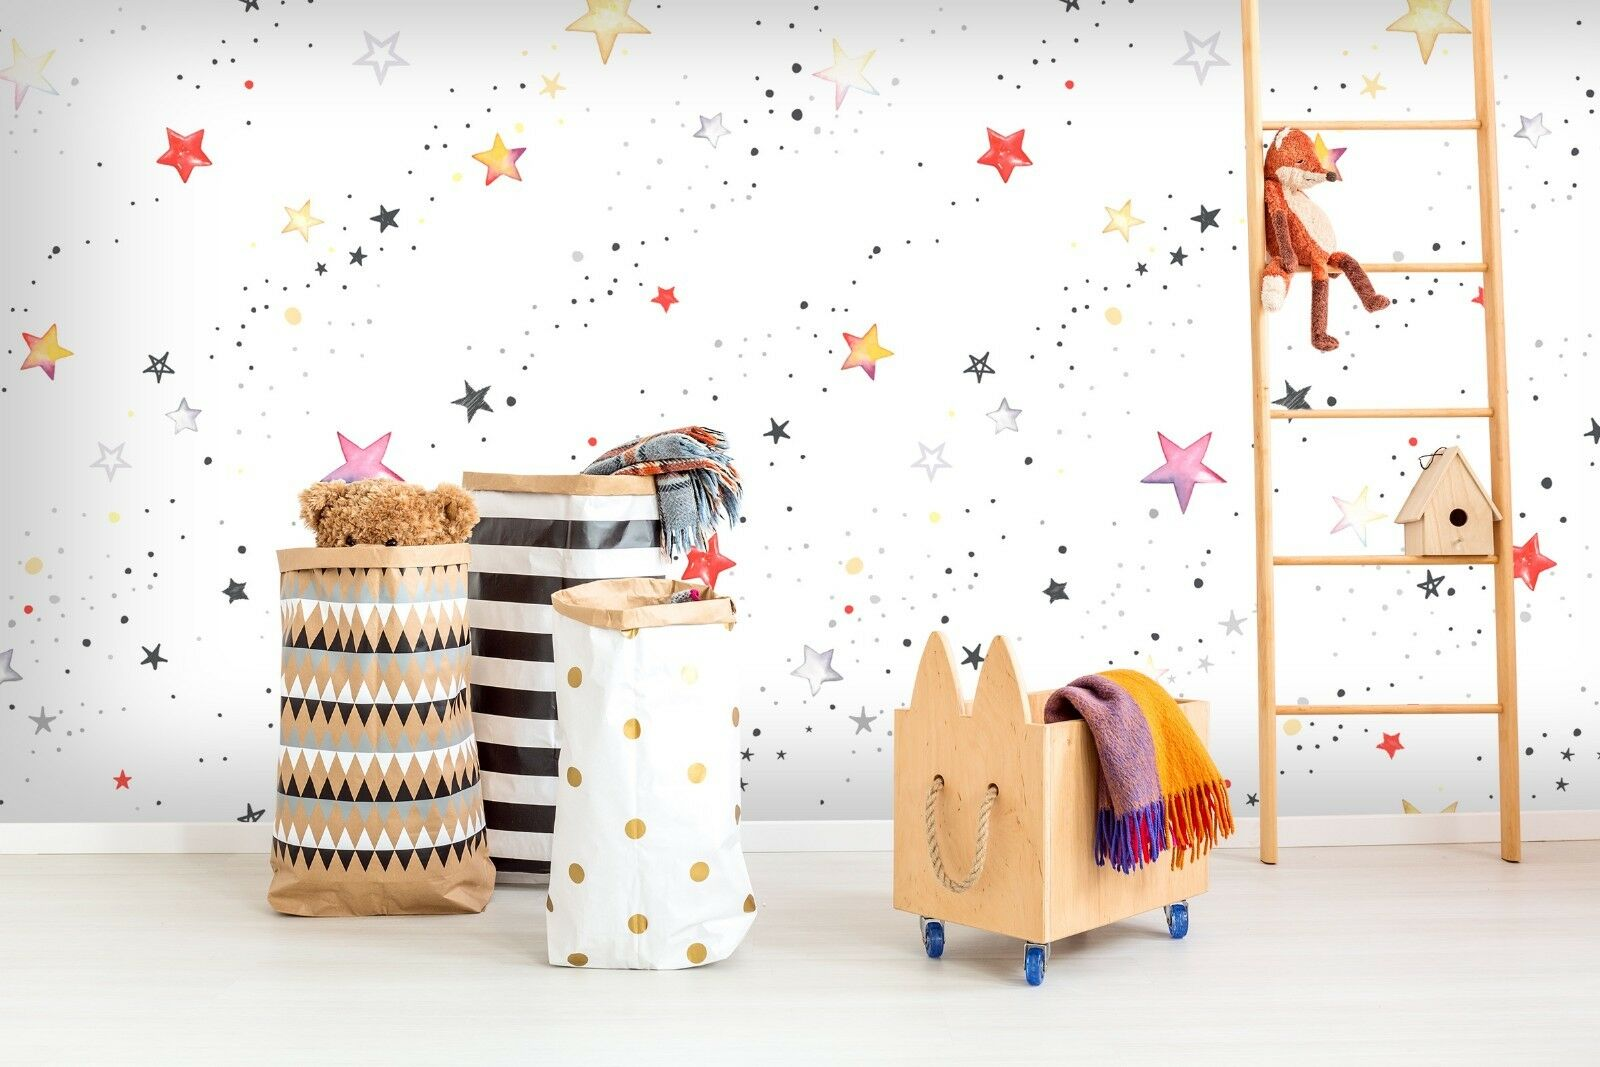 3D rot Star 7845 Wall Paper Exclusive MXY Wallpaper Mural Decal Indoor Wall AJ